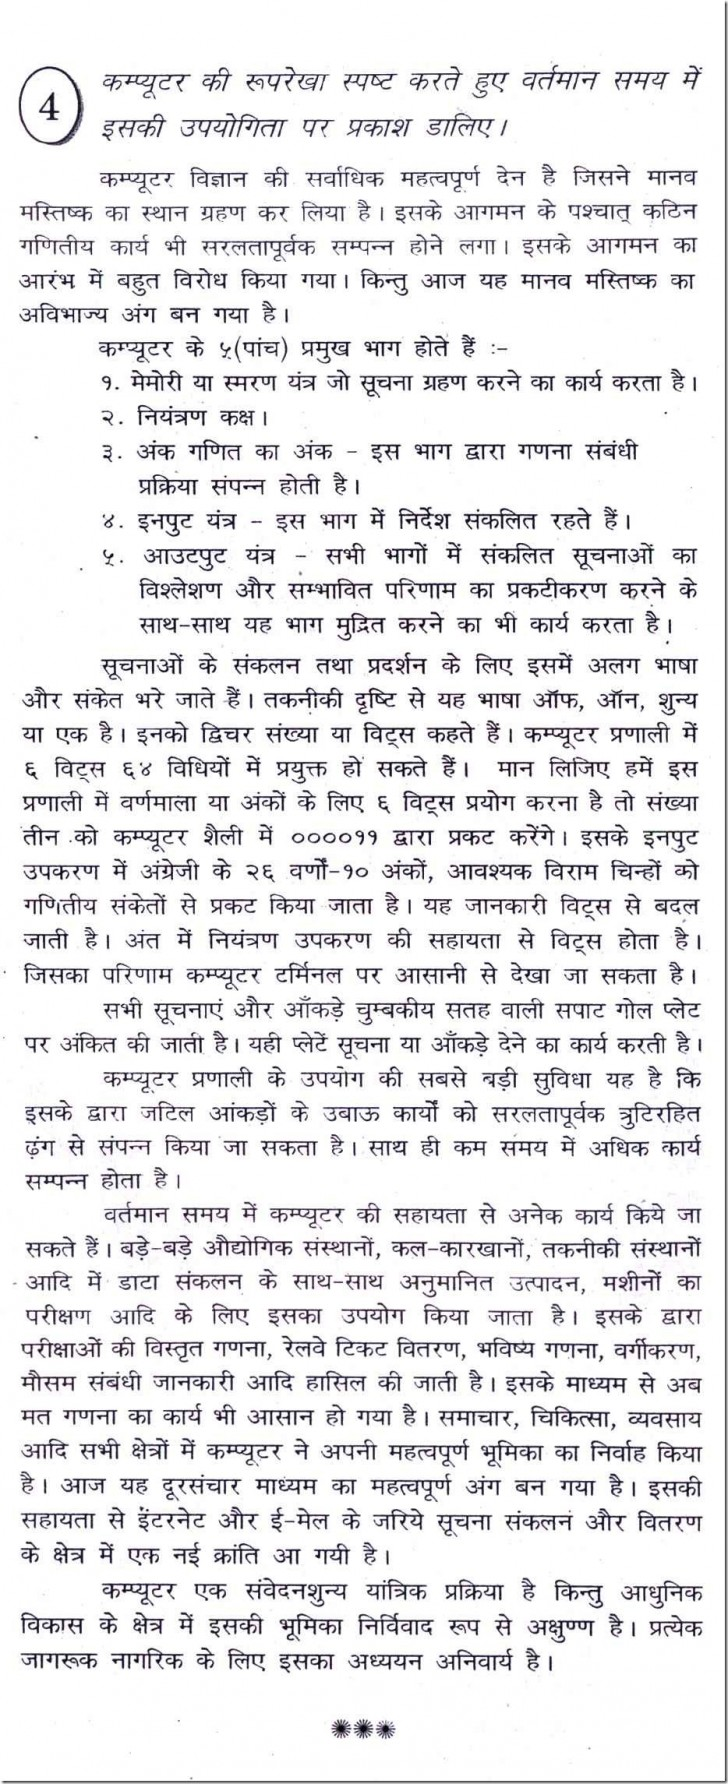 014 Kk0034 Thumb Advantage And Disadvantage Of Science Essay Shocking Advantages Disadvantages Pdf In Hindi English 728